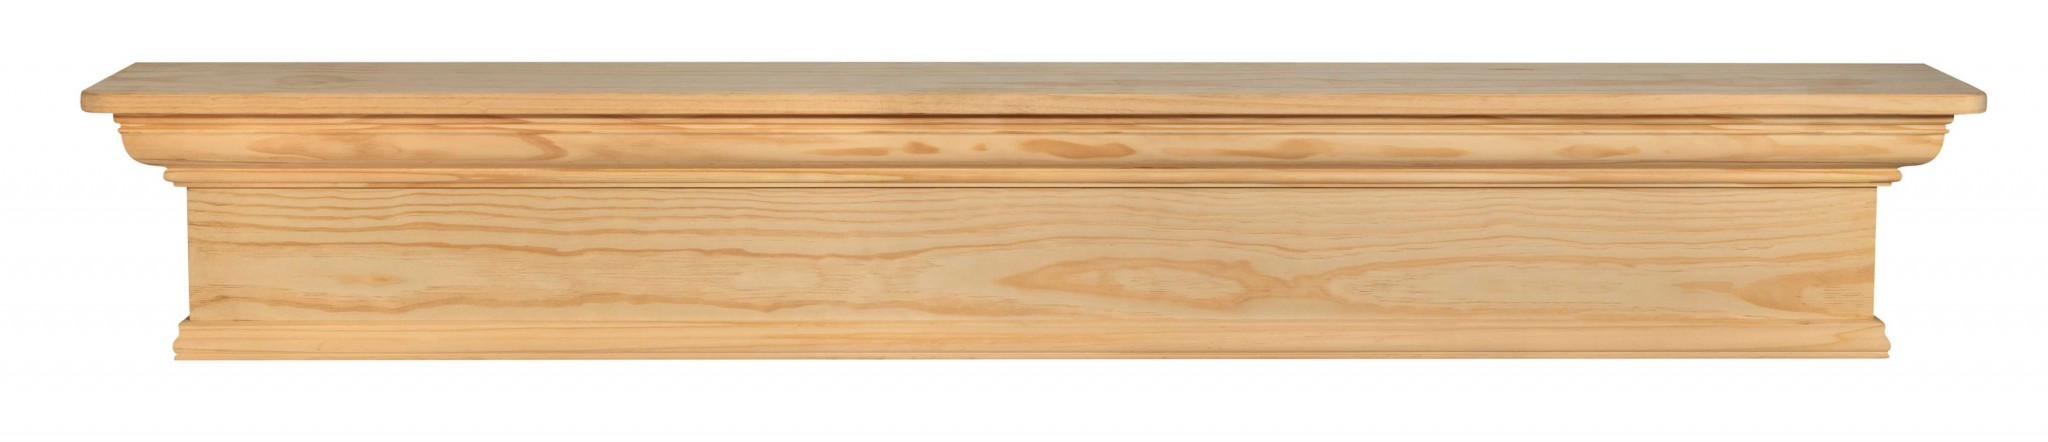 "48"" Sophisticated Unfinished Pine Wood Mantel Shelf"